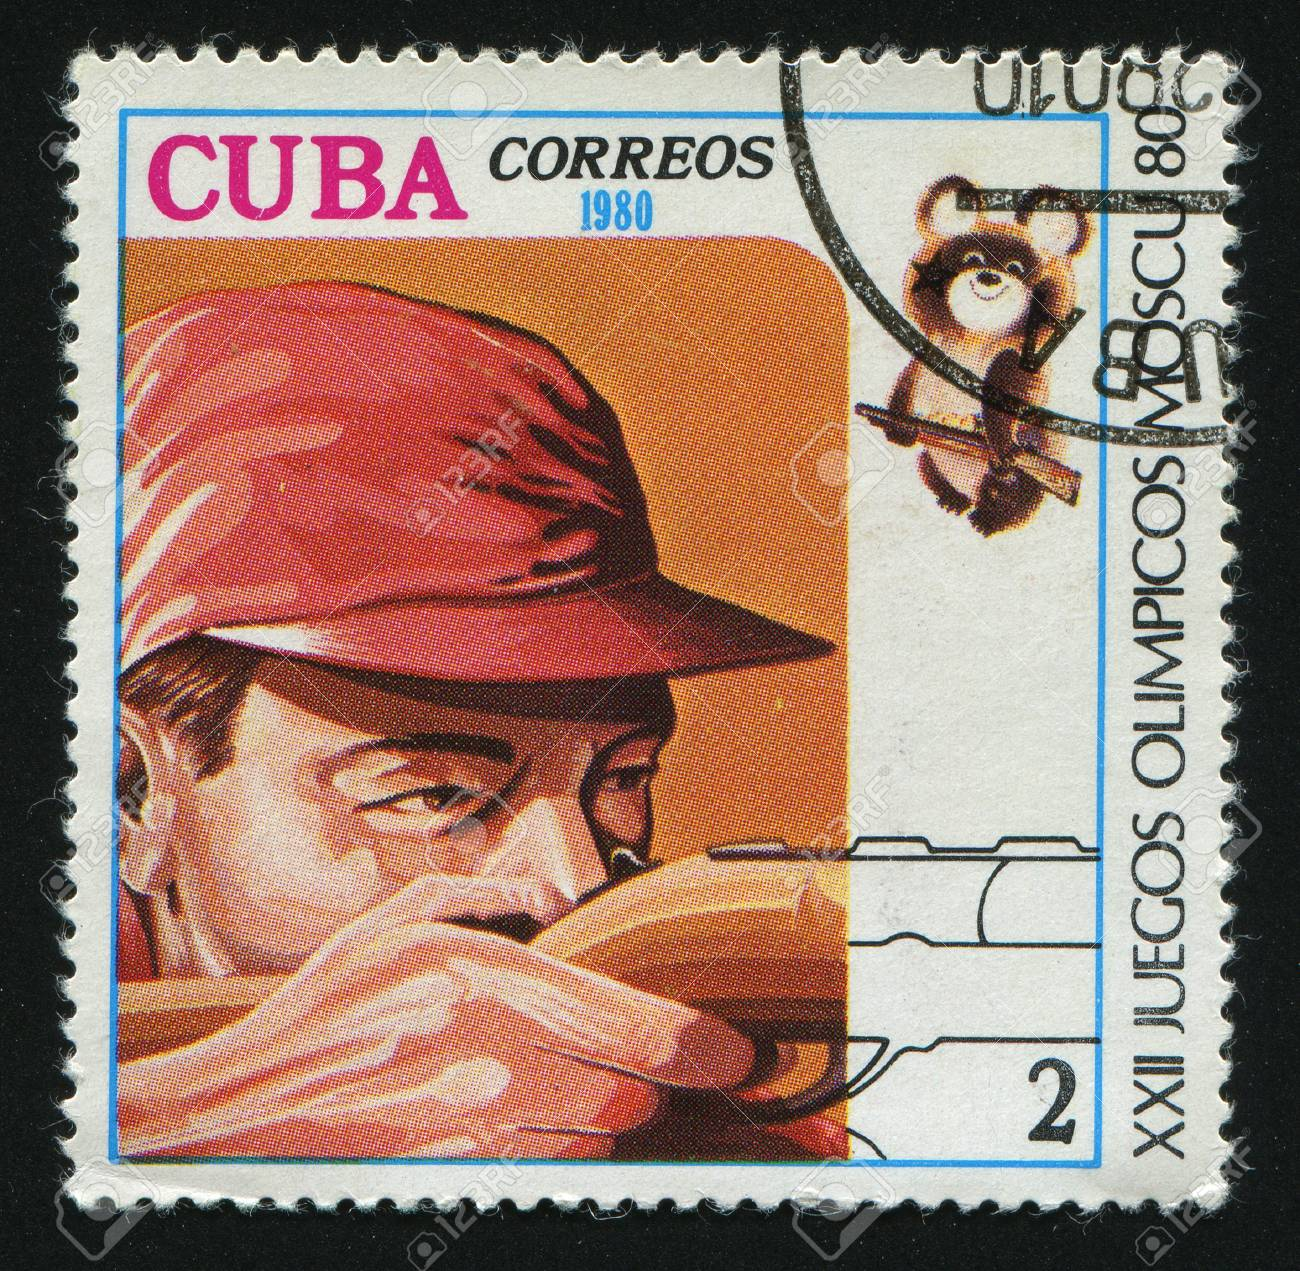 CUBA - CIRCA 1980: A  stamp printed by Cuba,  shows competition on rifle shooting, circa 1980. Stock Photo - 7307911